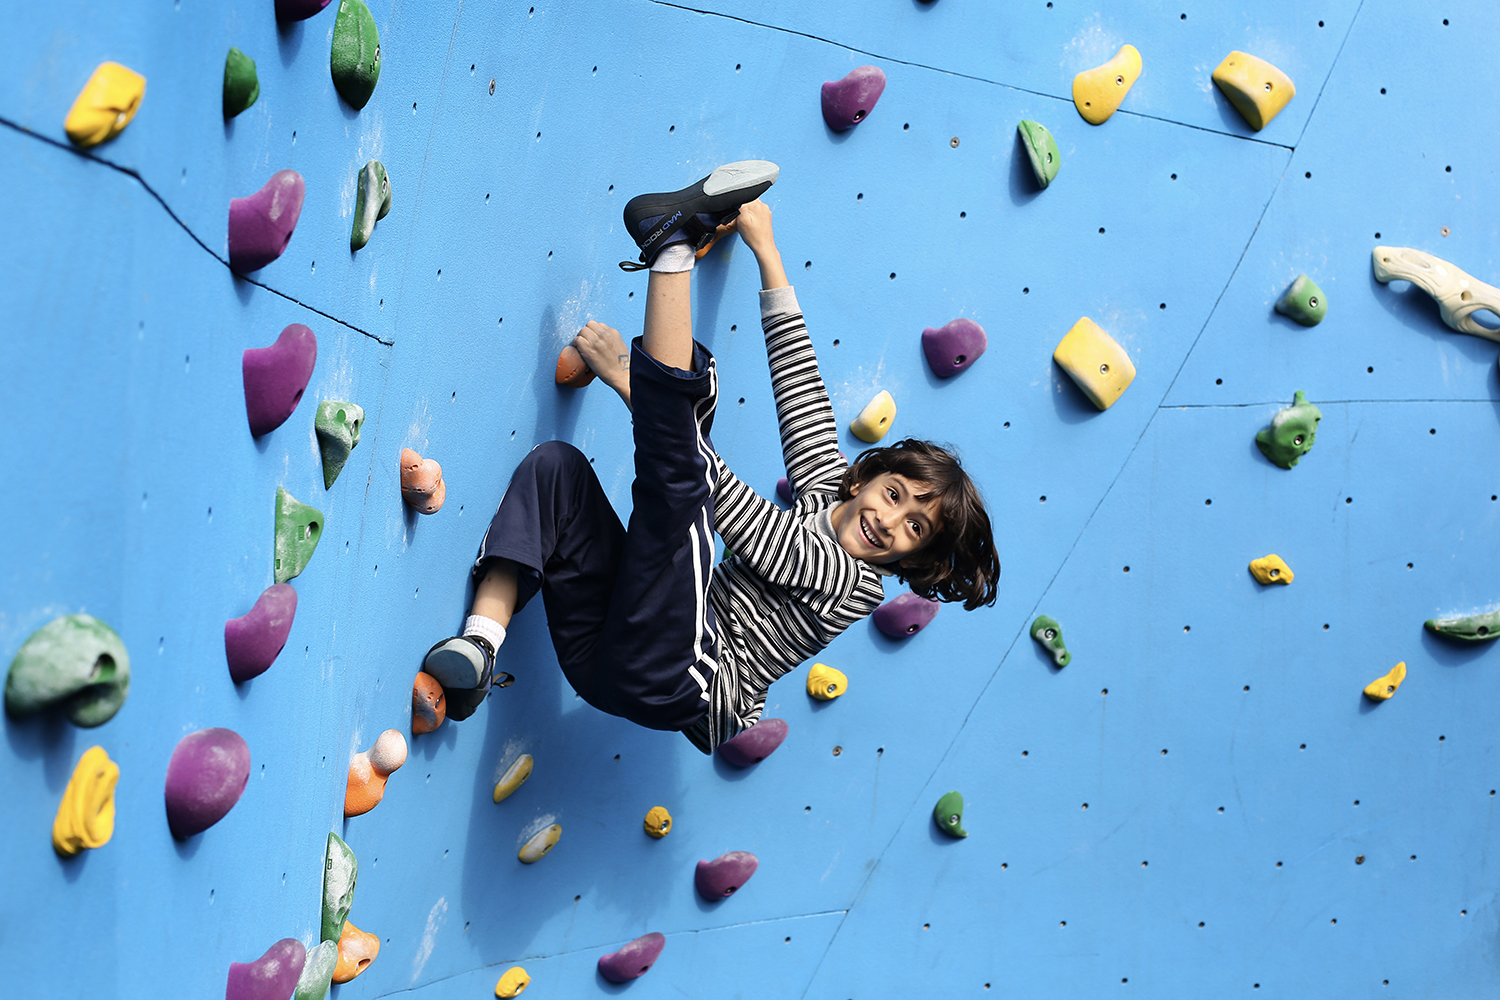 Youth - We welcome climbers ages 6 and up. Youth ages 14 and under must be accompanied by an adult to supervise and spot. No more than 2 kids per adult.